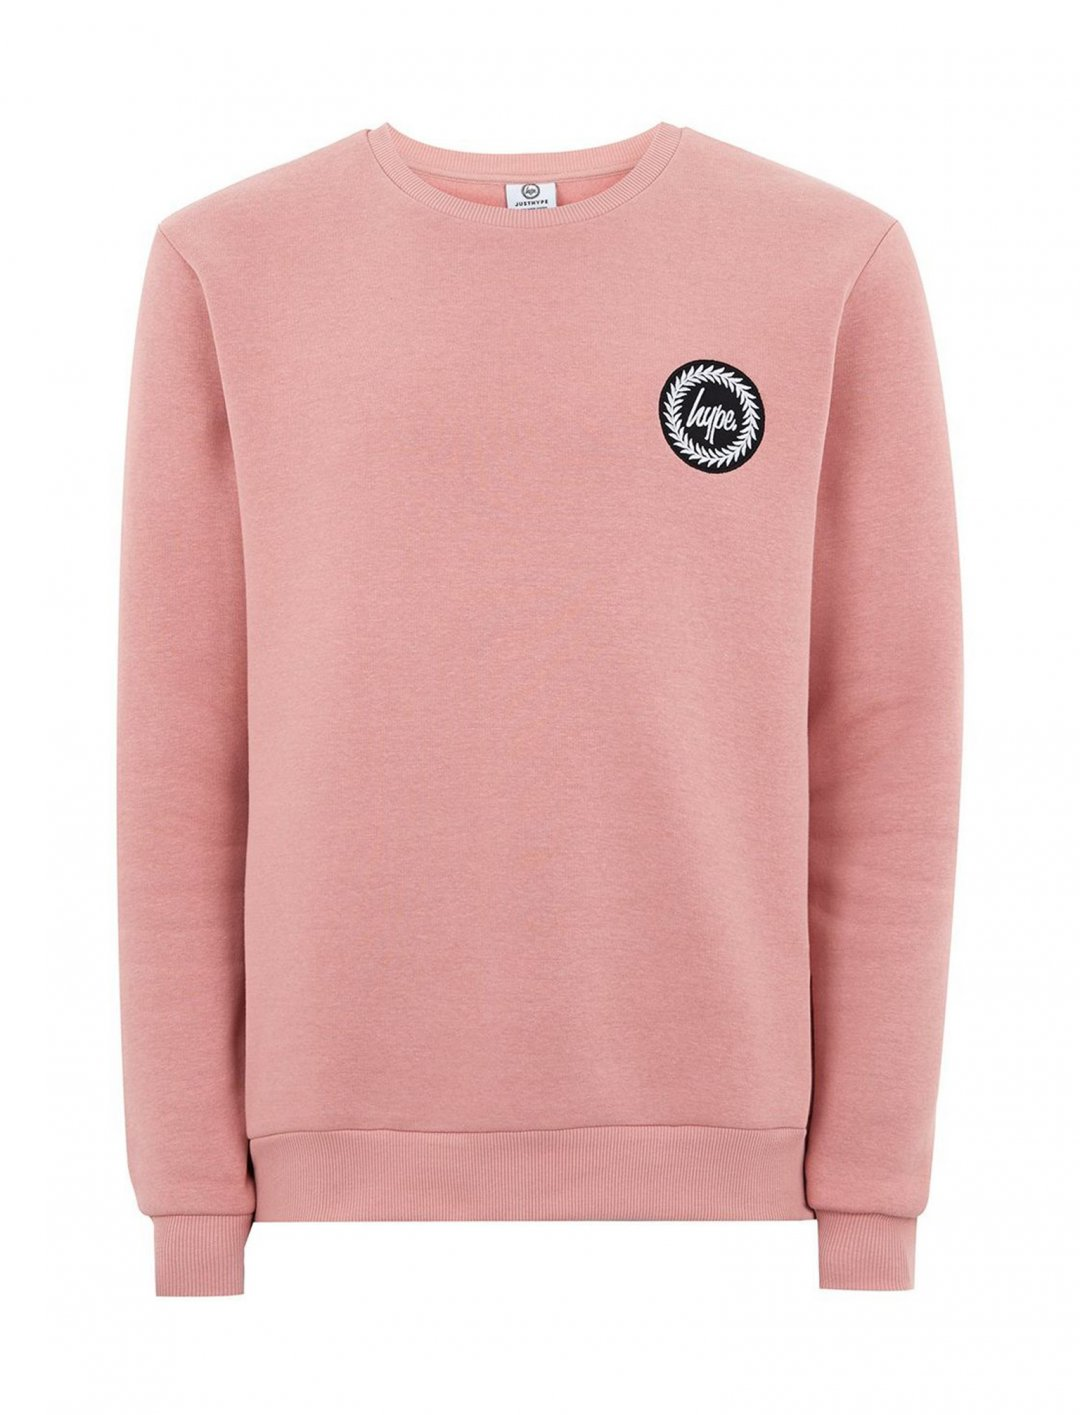 "Pink Crest Sweatshirt {""id"":5,""product_section_id"":1,""name"":""Clothing"",""order"":5} HYPE"